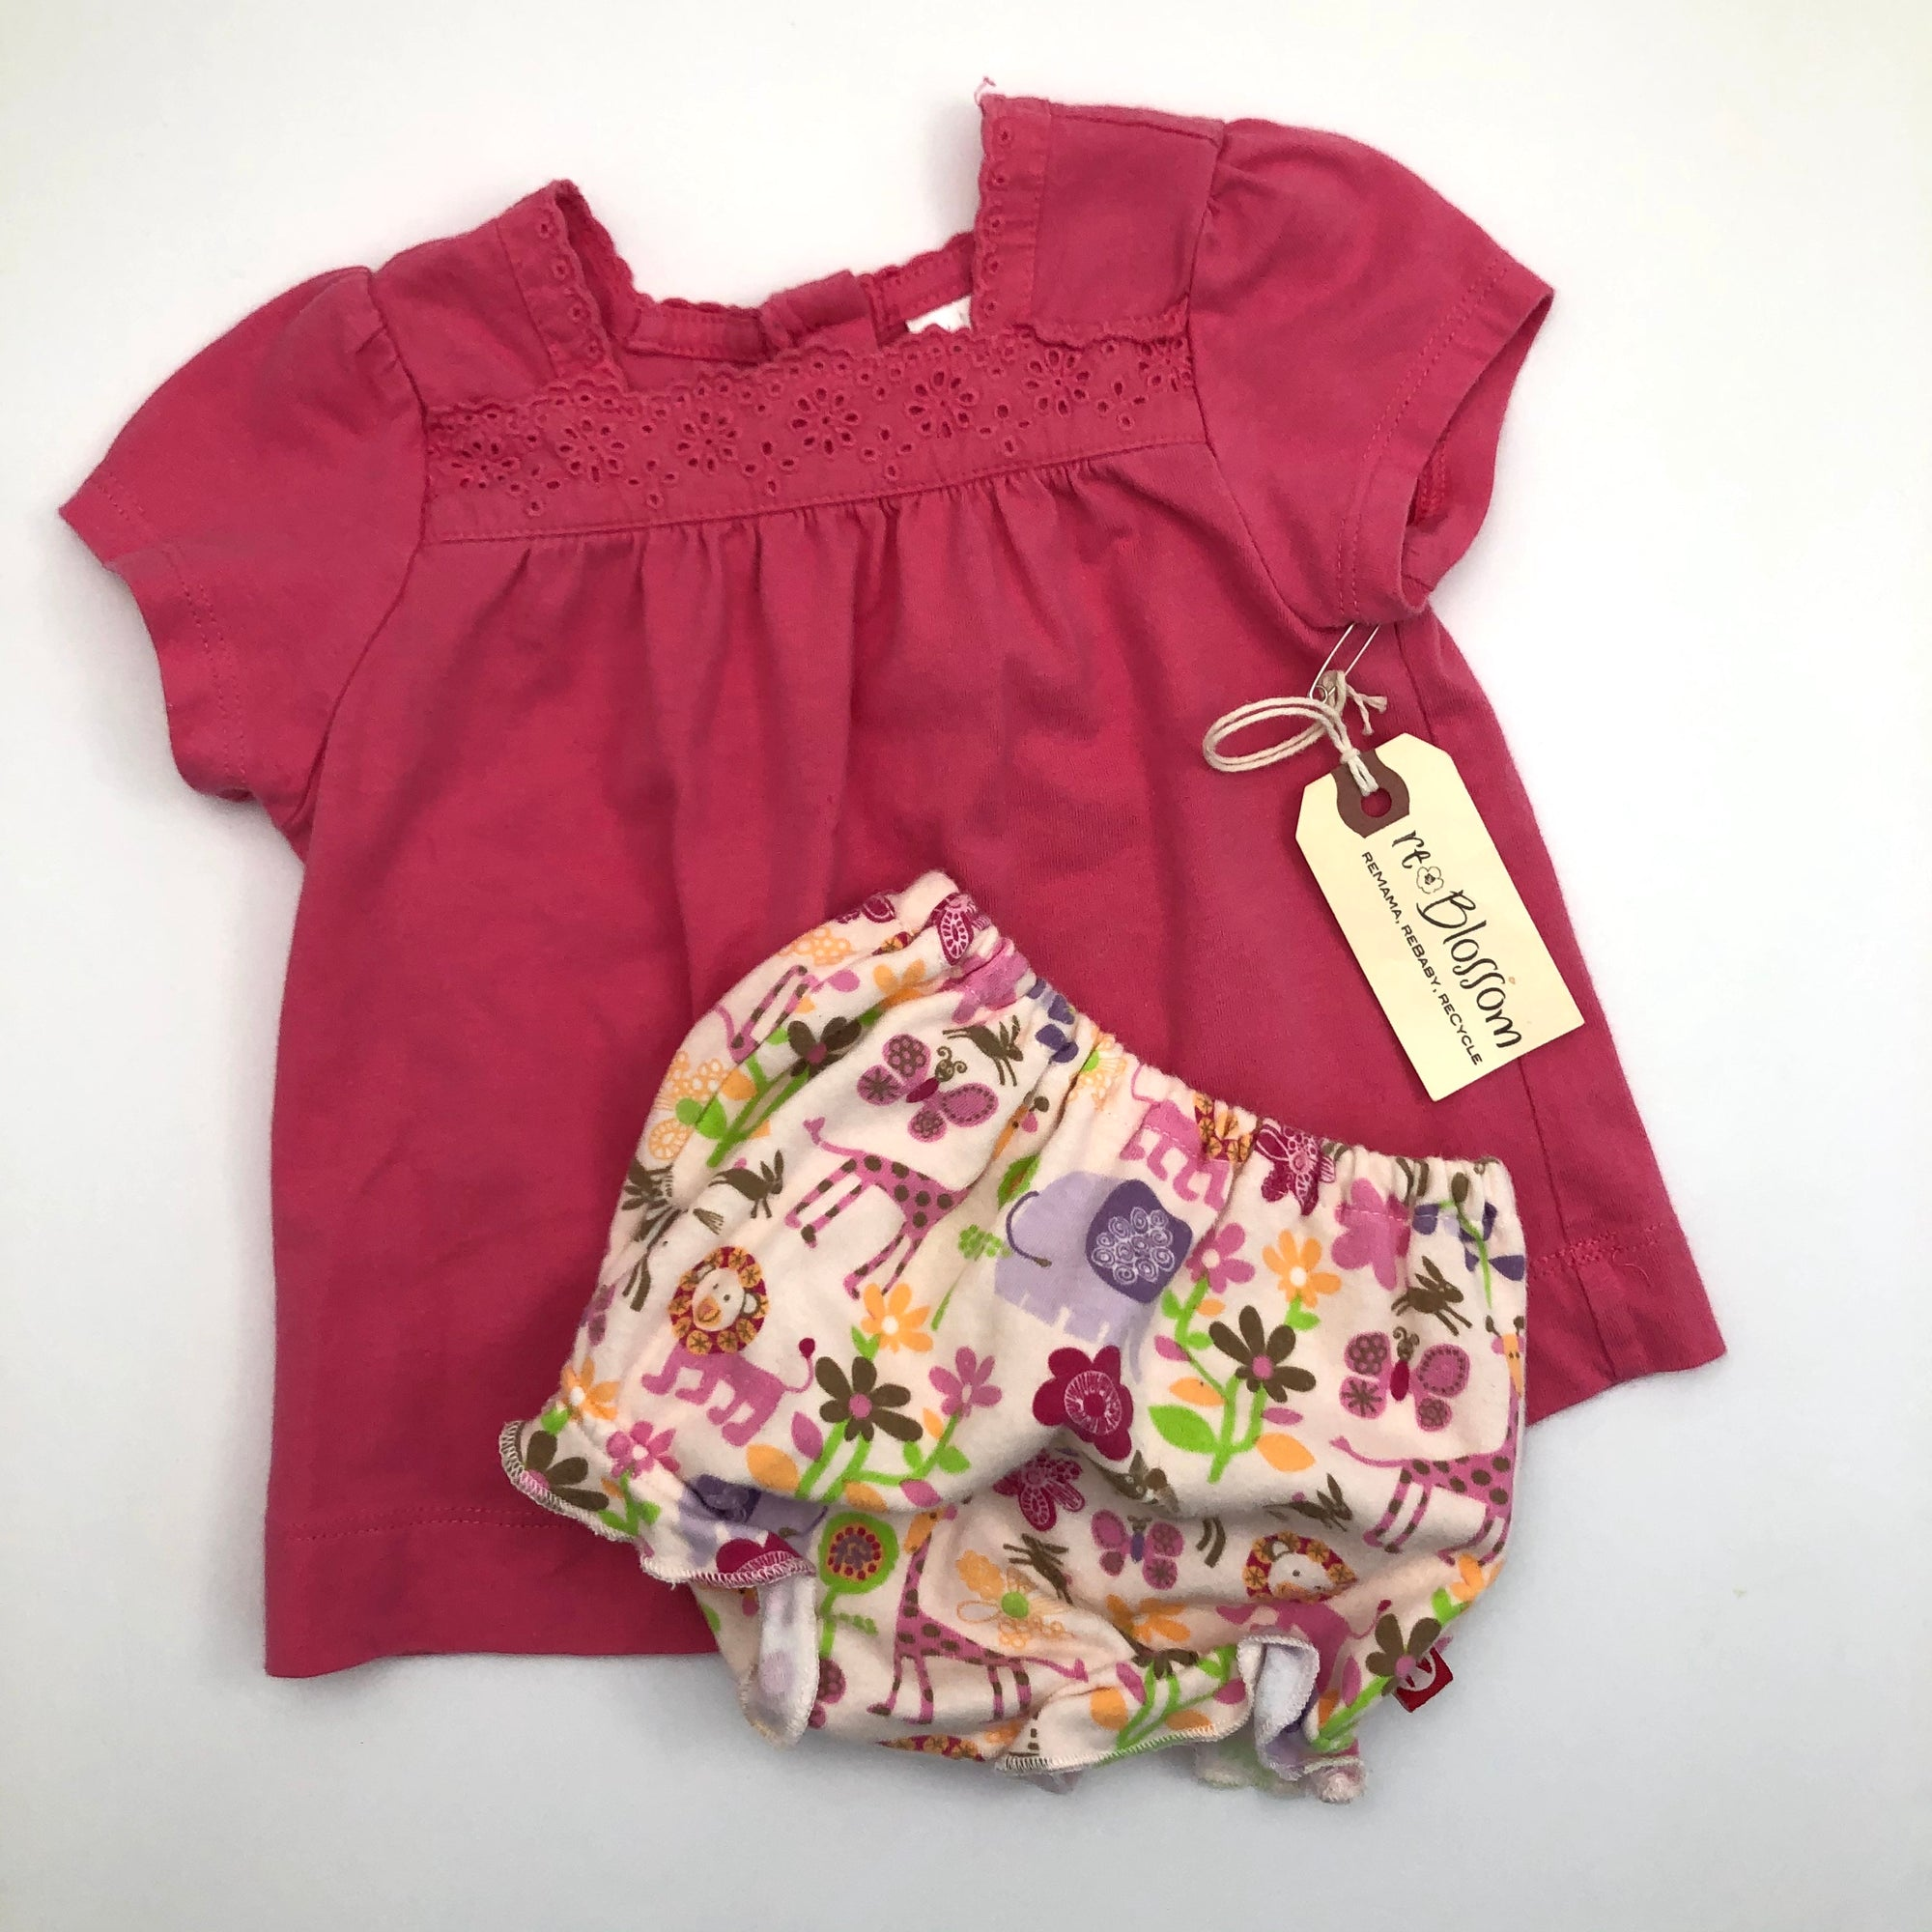 Resale 6-12 m Gap Pink Eyelet Shirt & 6 m Zutano Jungle Animal Bloomer Set